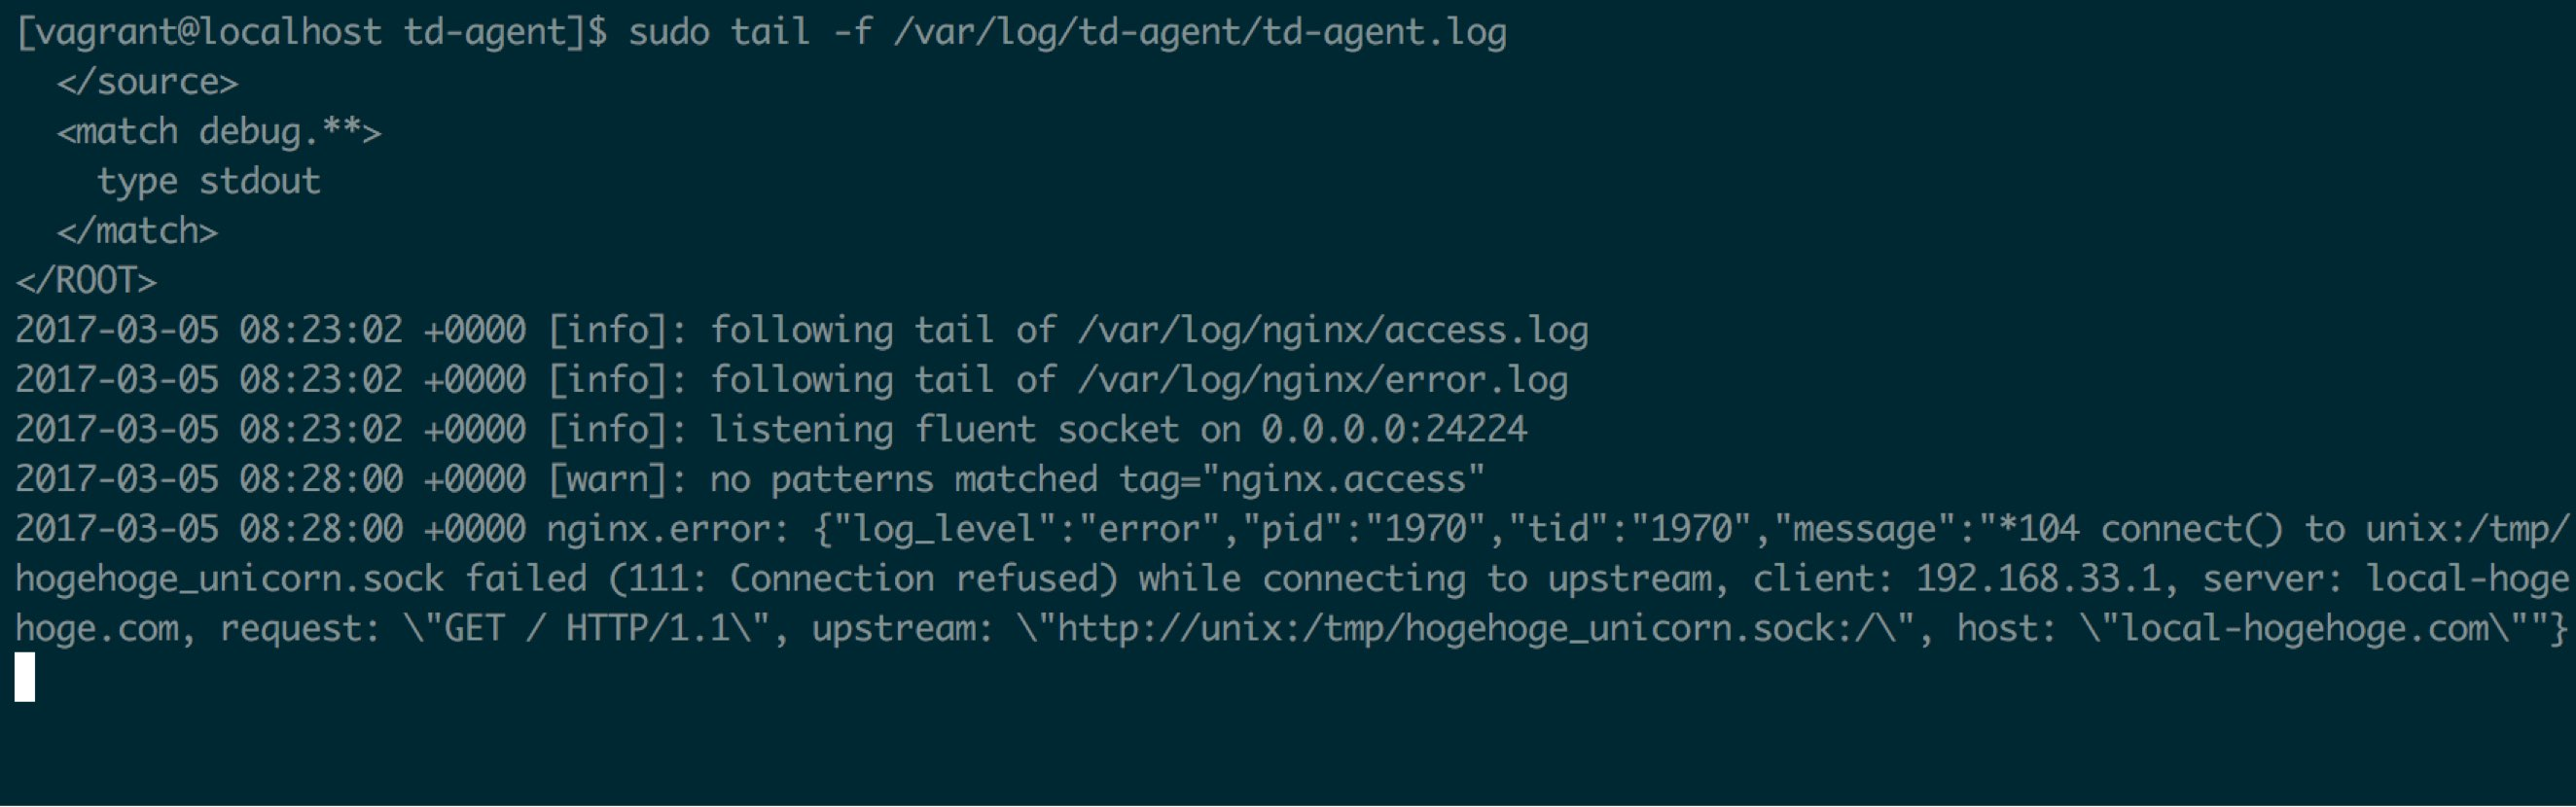 How to get nginx error log and access log with td-agent – joppot